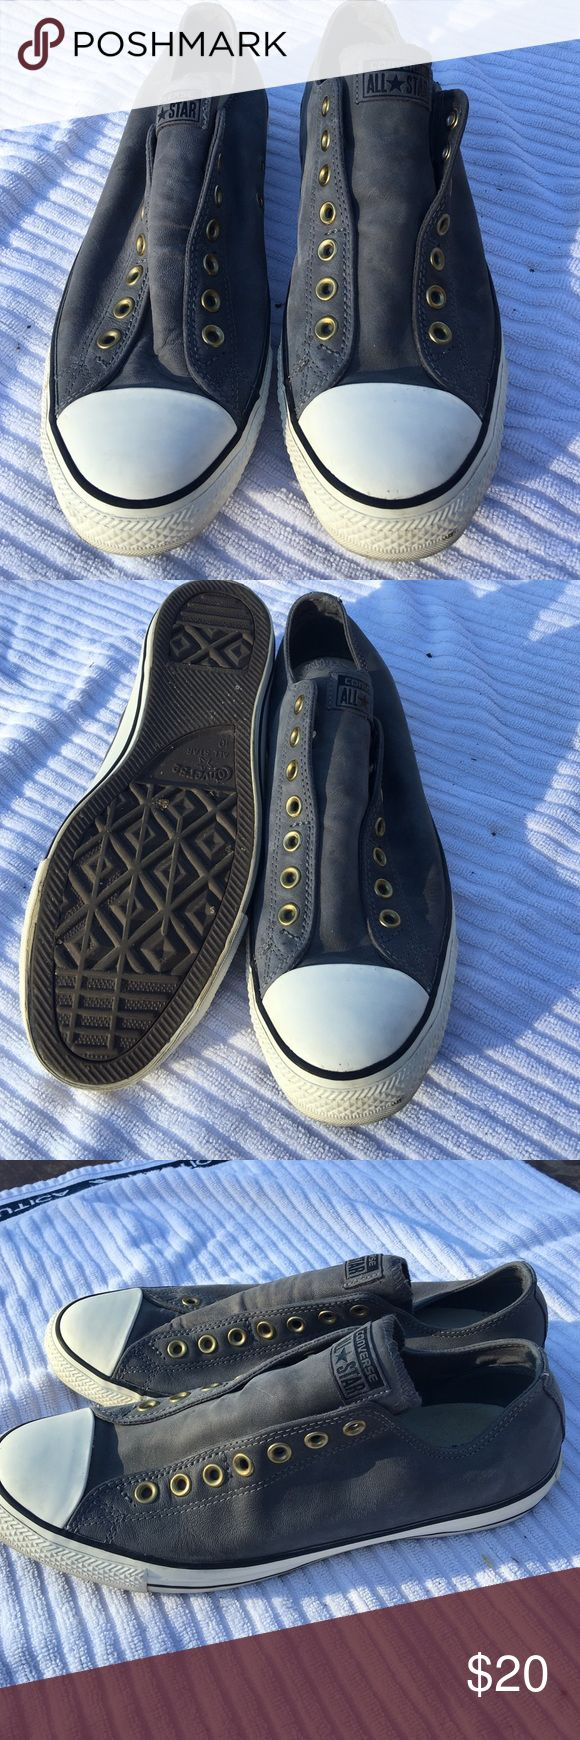 Converse Chuck Taylor leather slip on sneakers My foot has grown, these no longer fit.  Converse Chuck Taylor leather slip on men's sneakers size 10 Converse Shoes Sneakers